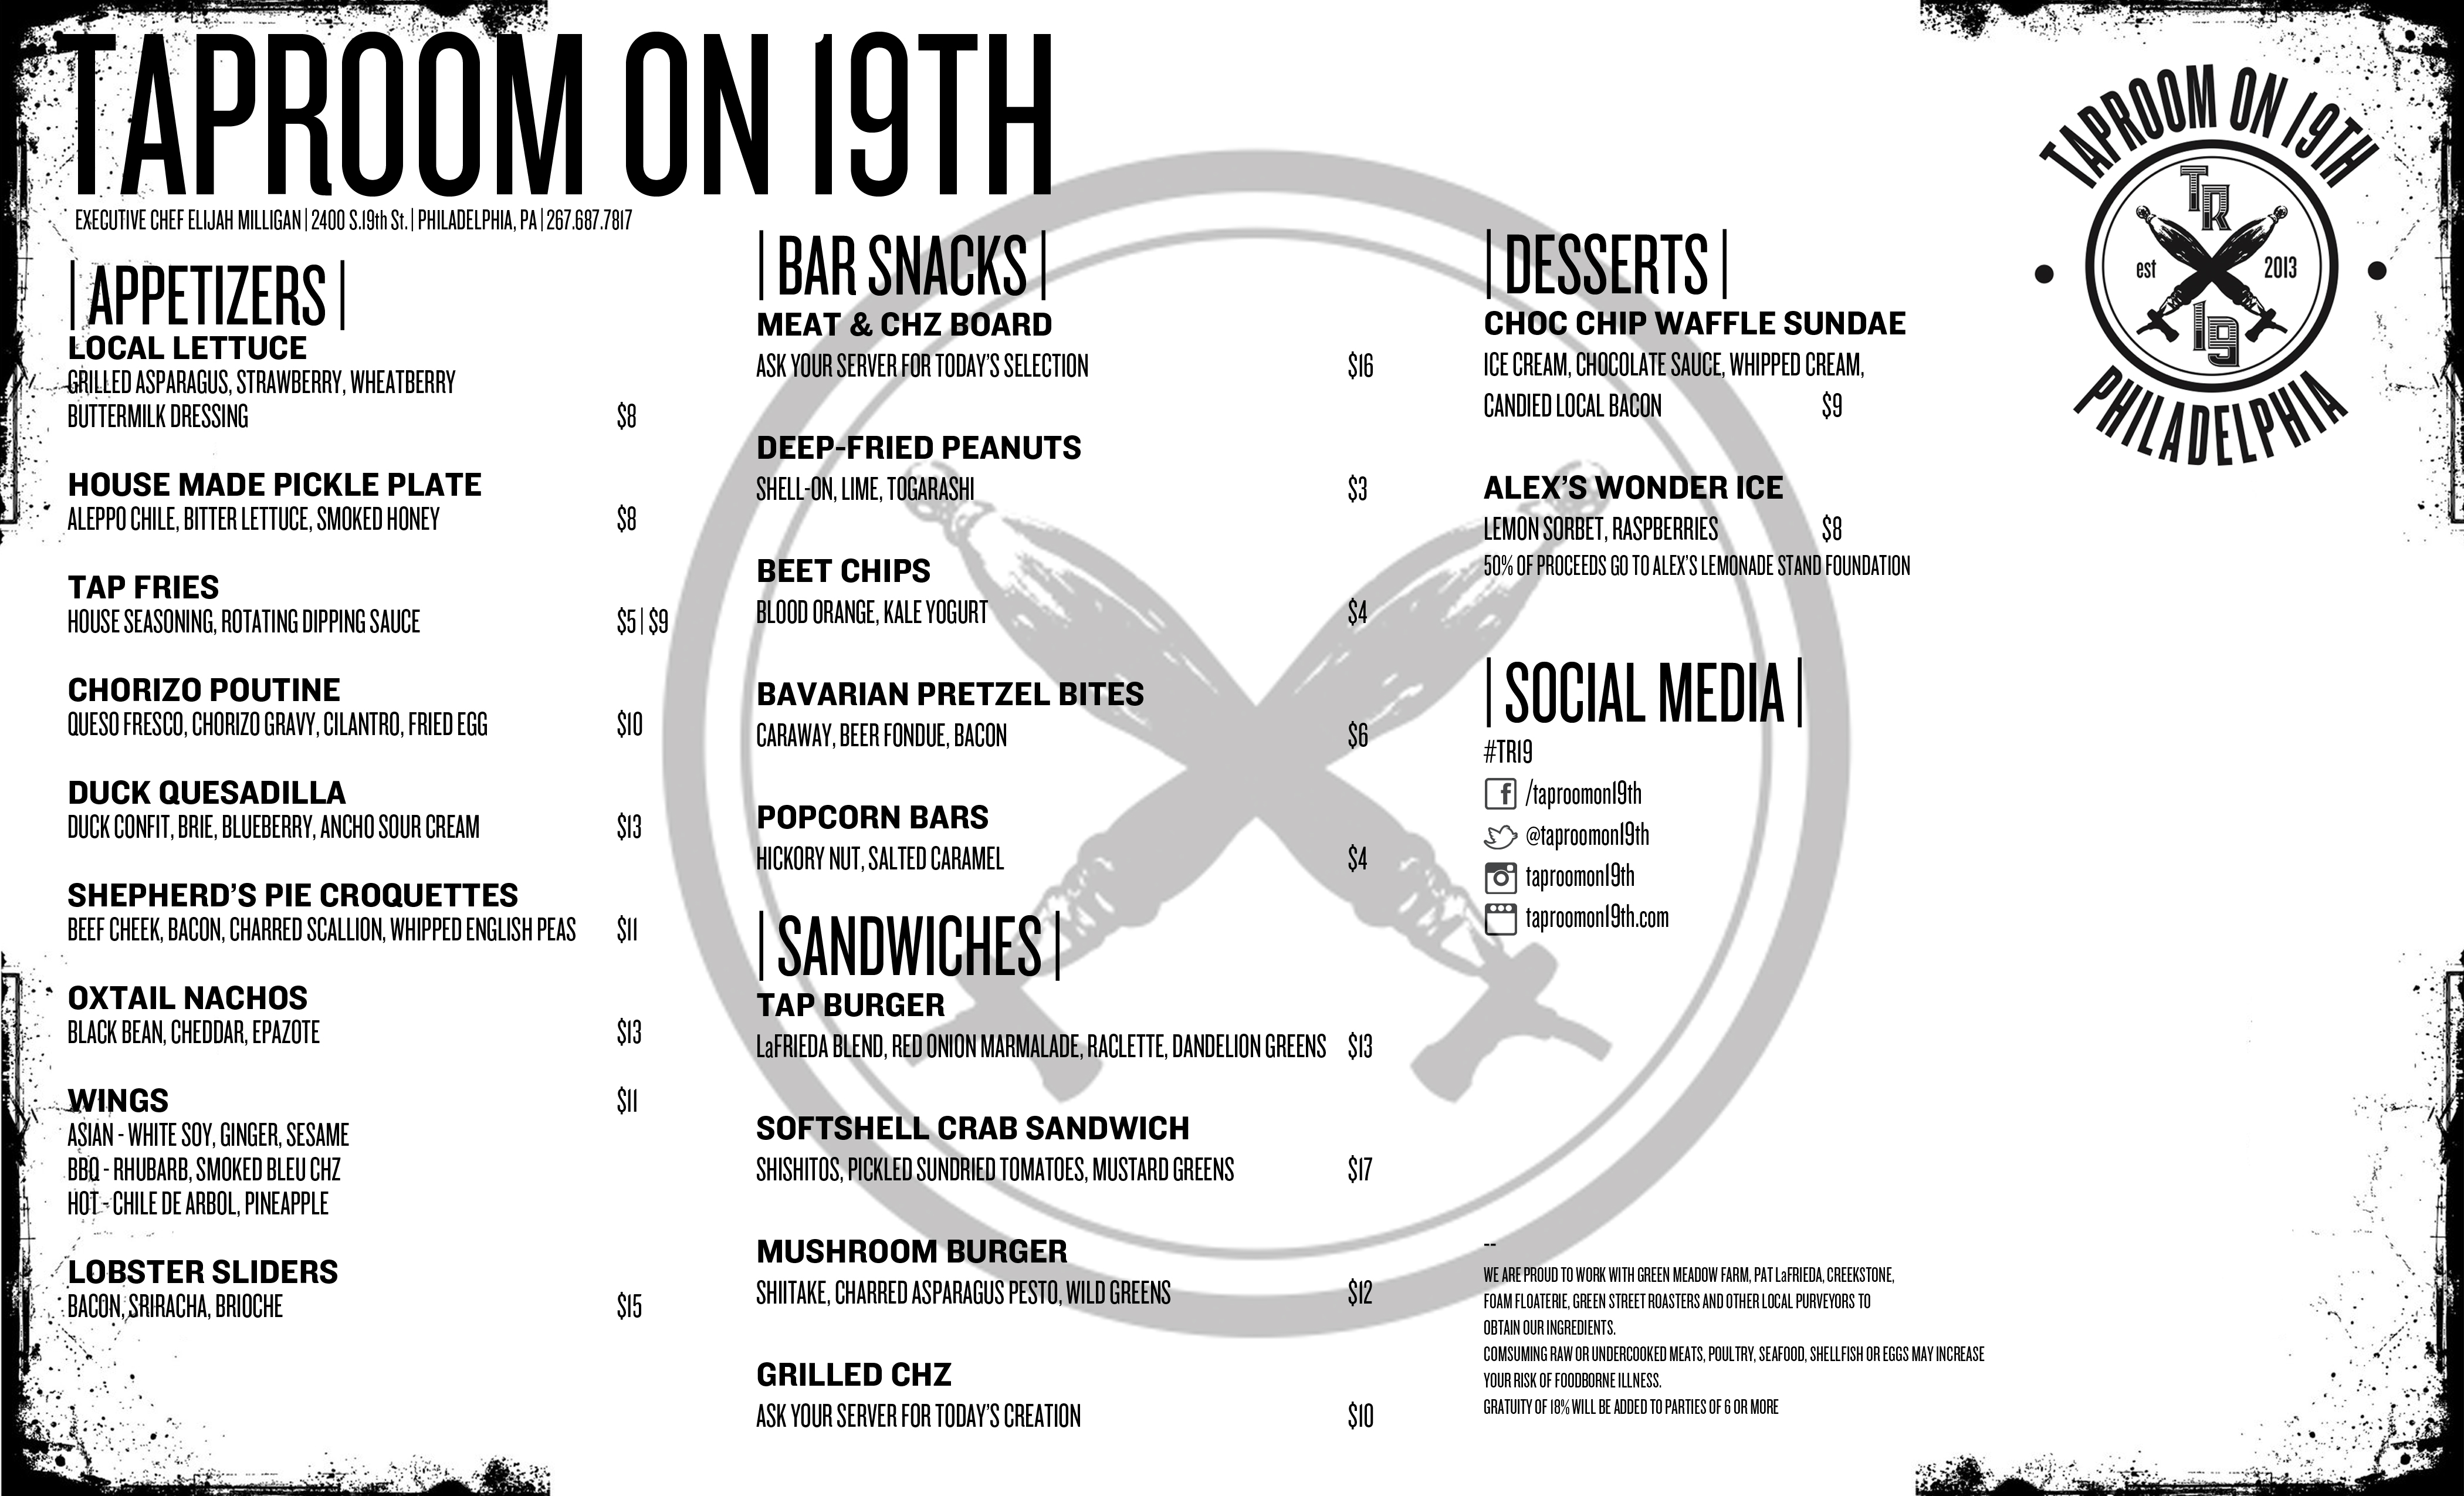 taproom on 19th new menu